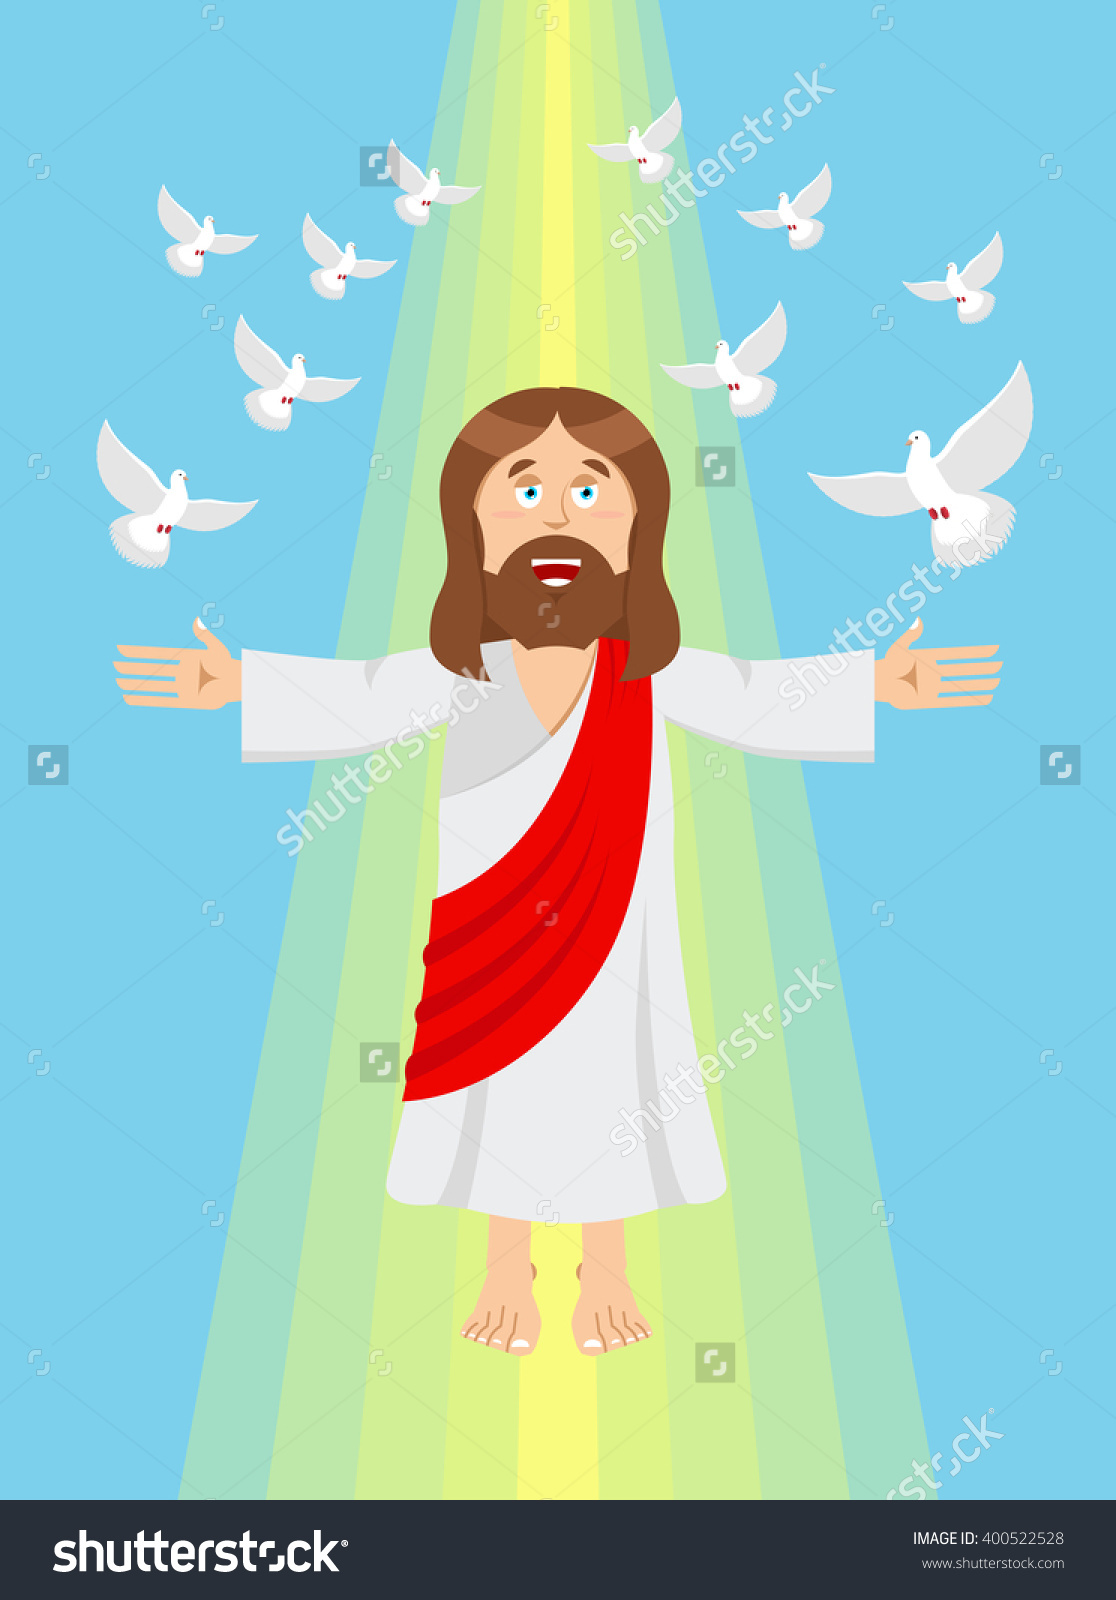 animation clipart of jesus in heaven